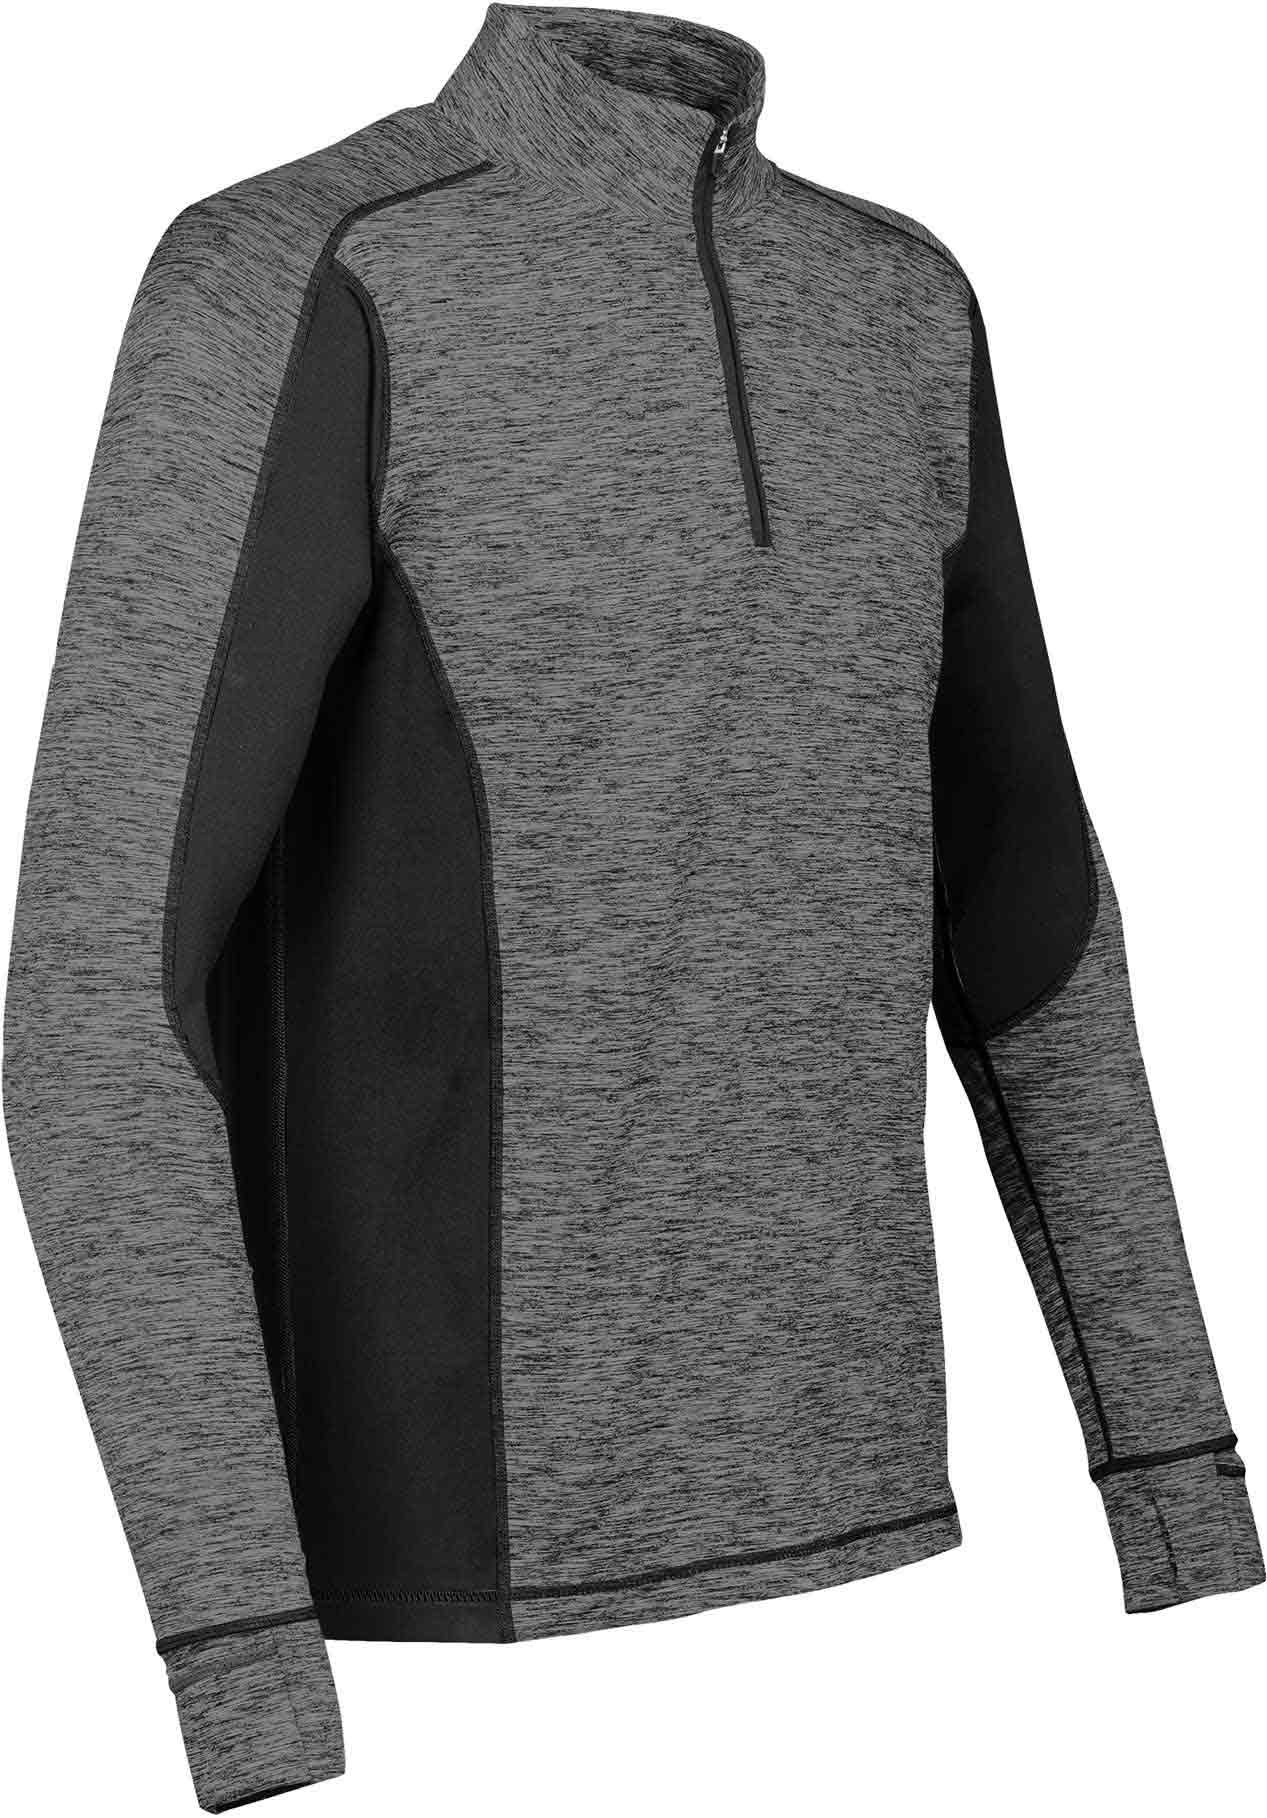 Stormtech Men's Lotus 1/4 Zip